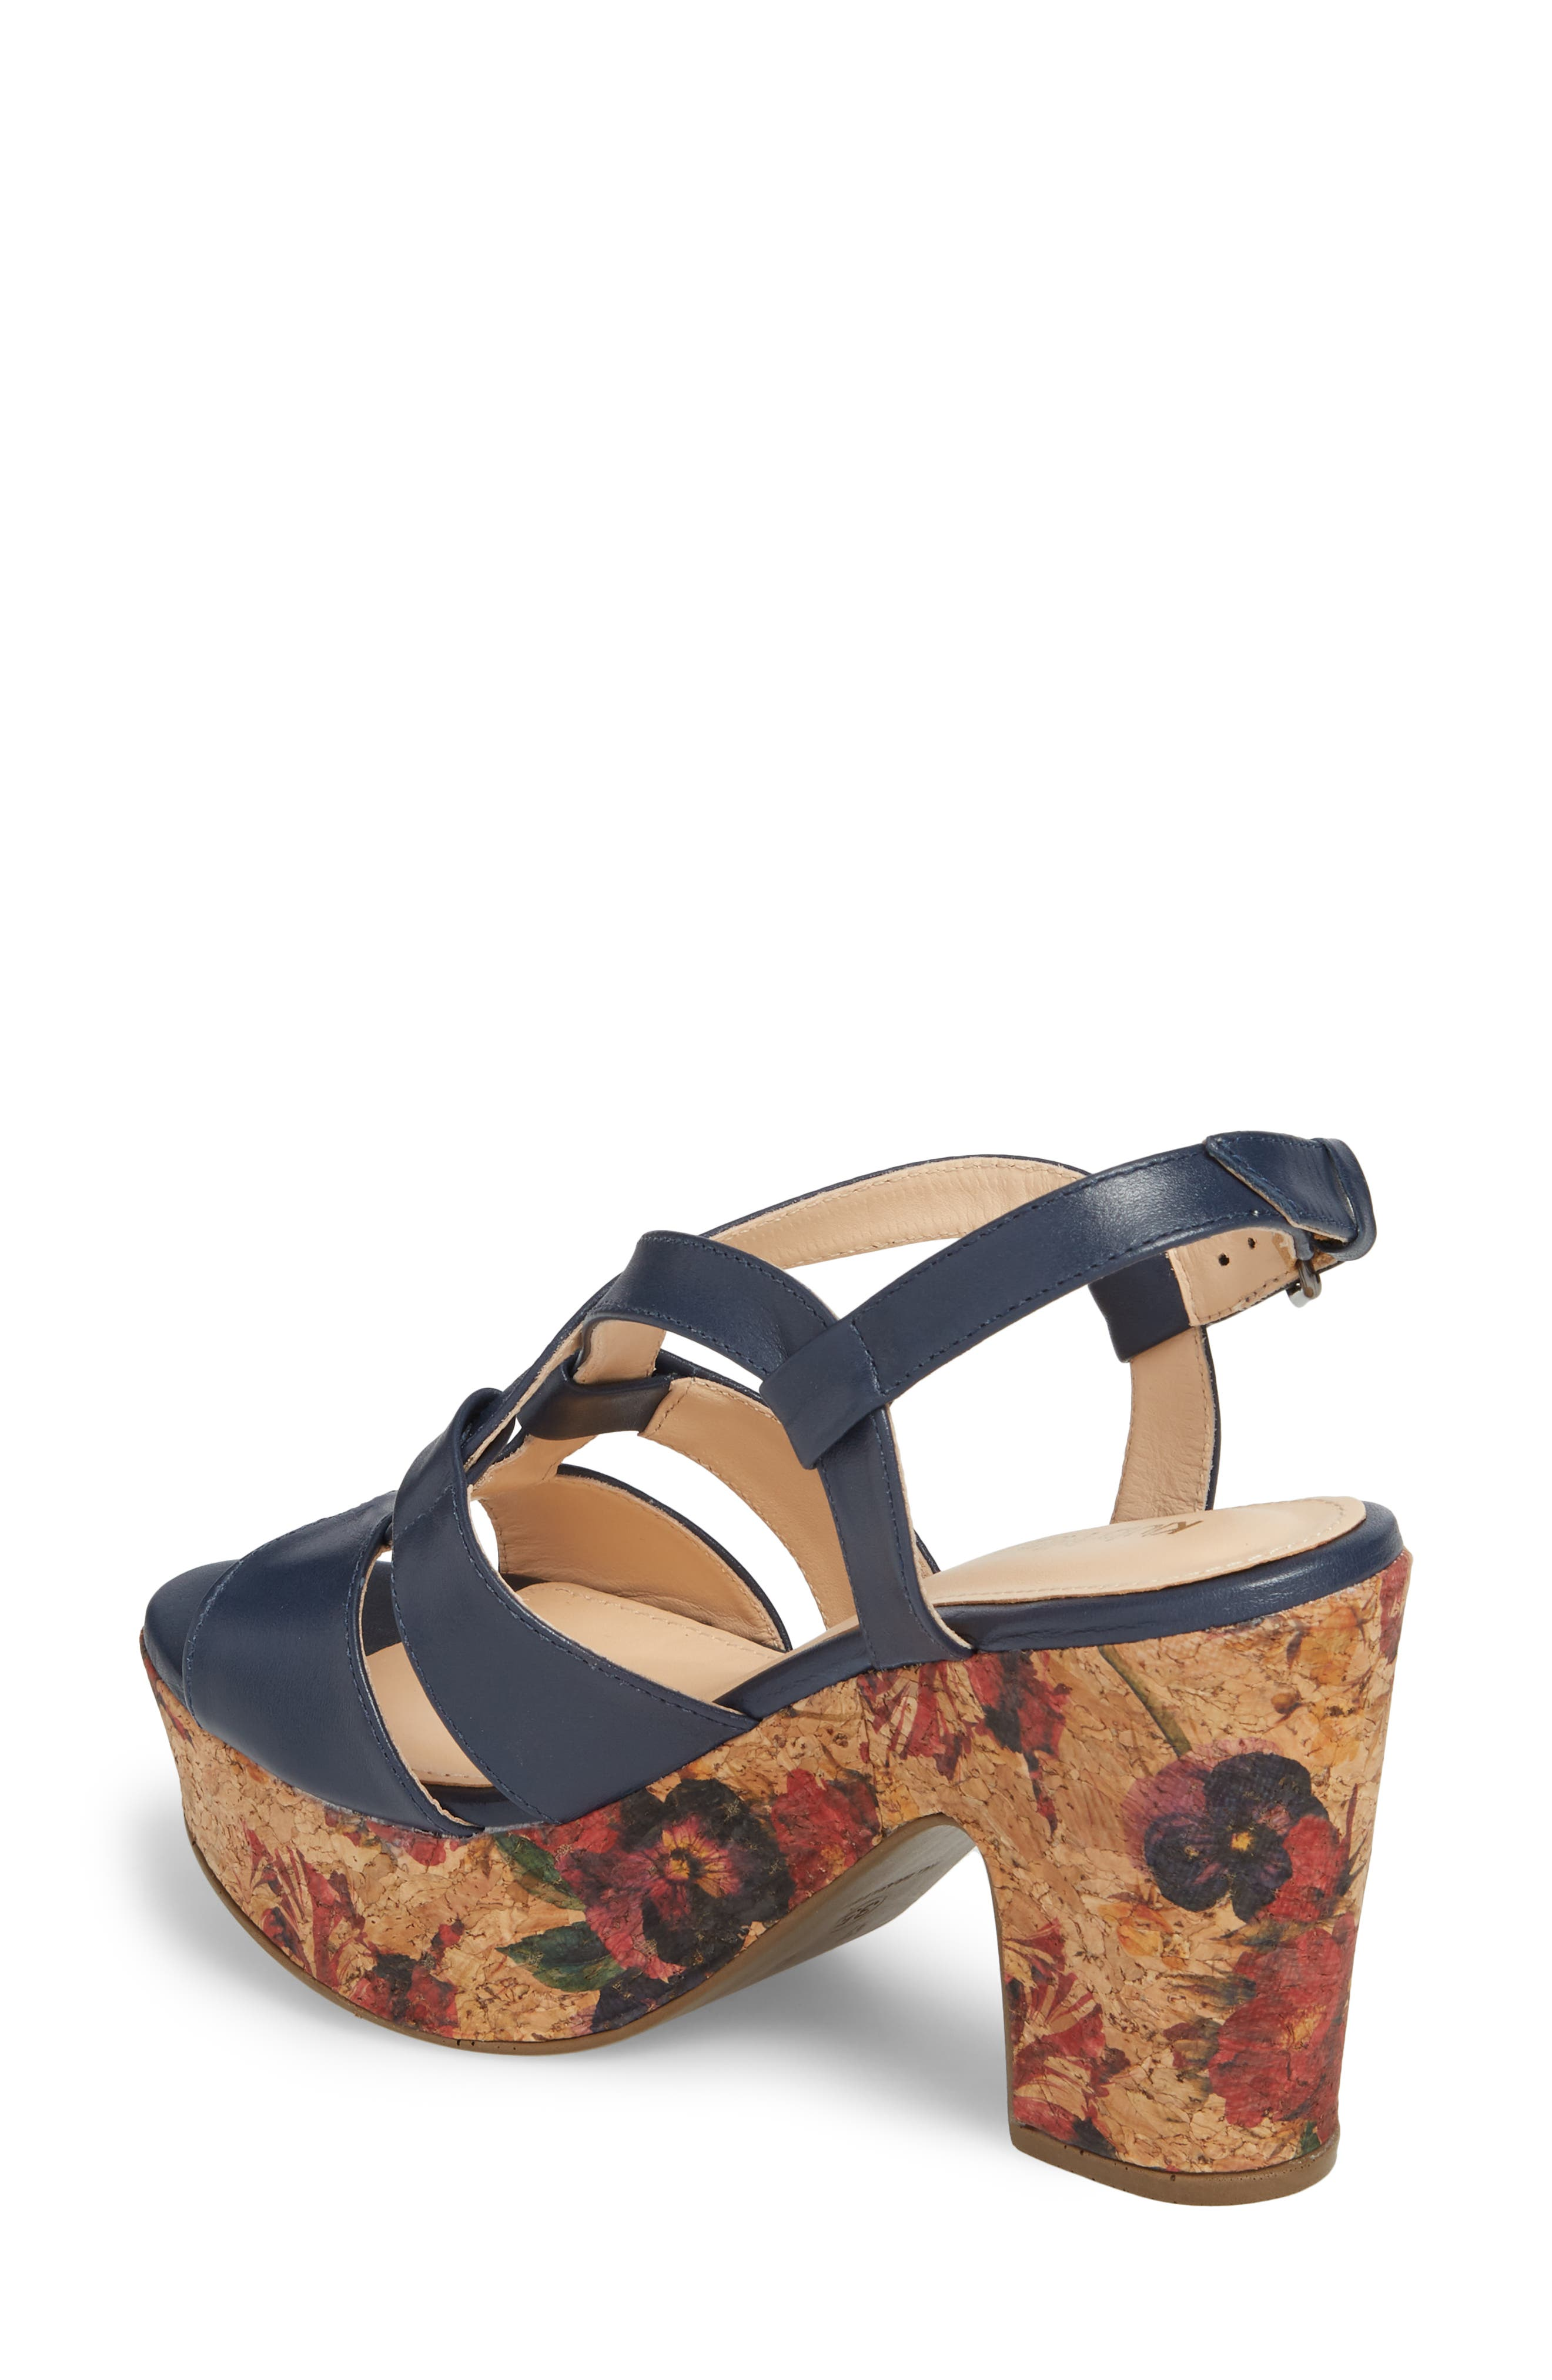 KLUB NICO,                             Victoria Platform Sandal,                             Alternate thumbnail 2, color,                             NAVY LEATHER